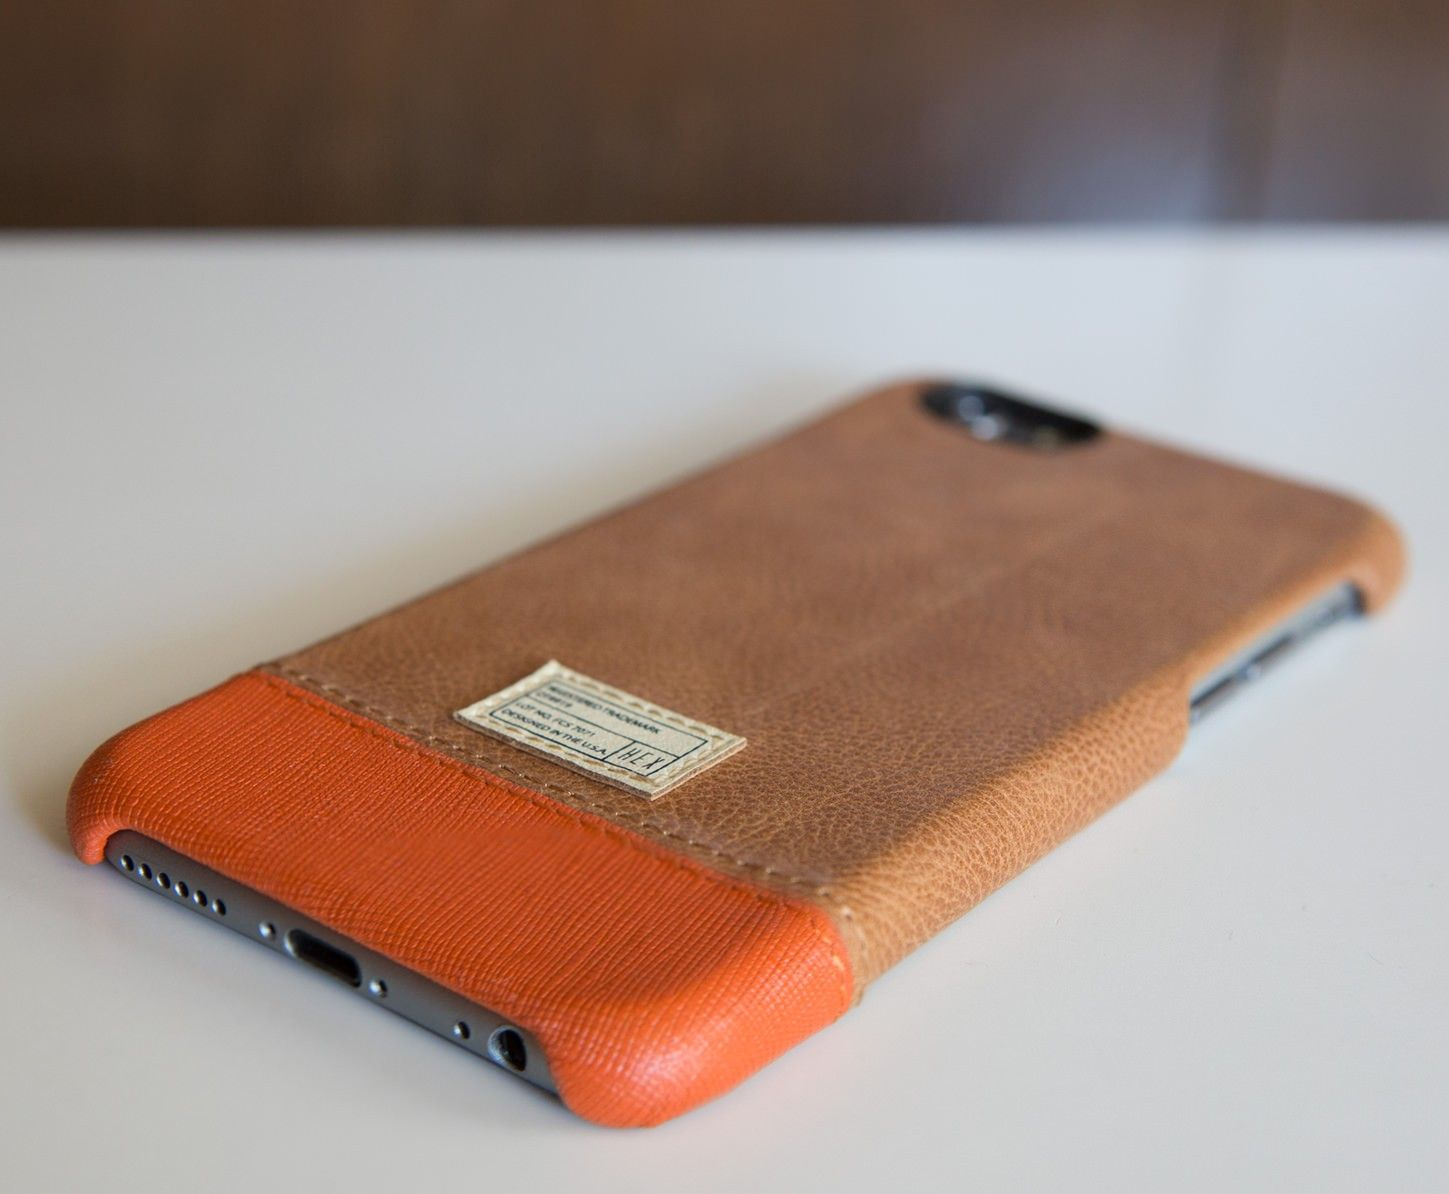 super popular 2a8db a61ad Focus Case for iPhone 6 Brown Leather - iPhone 6 - Cases | HEX ...